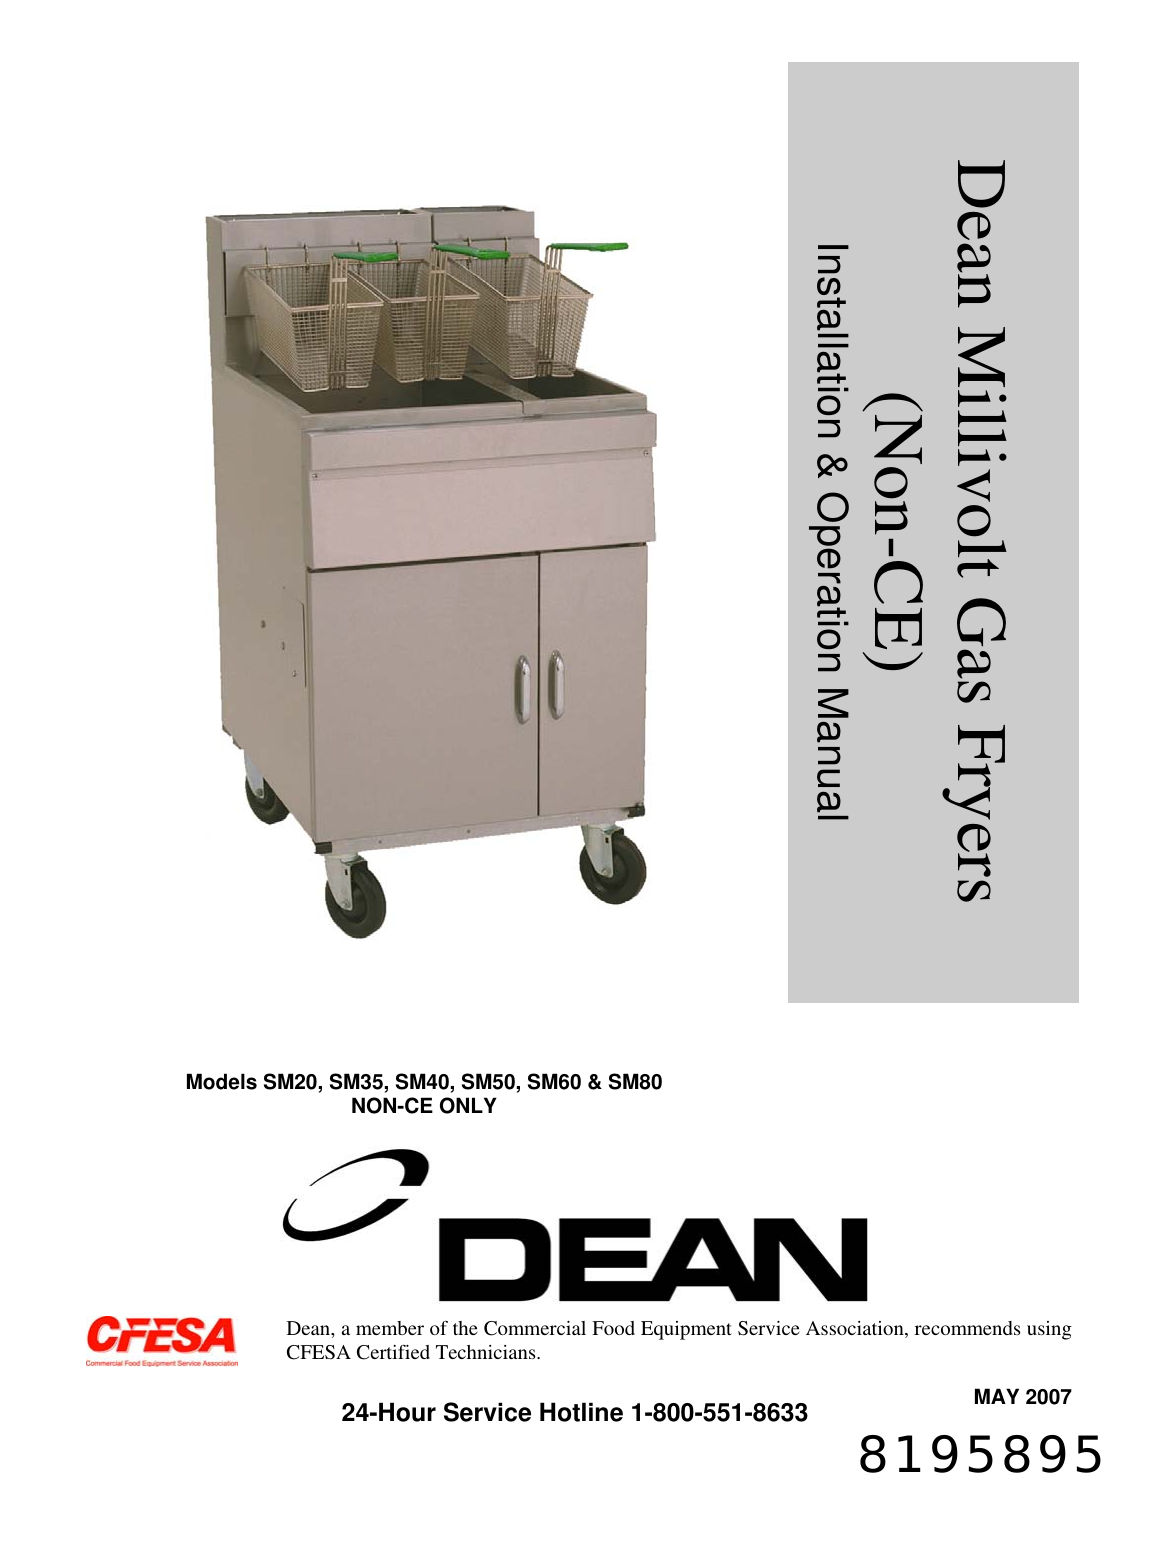 Frymaster Dean Sm35 Users Manual Millivolt Gas _NON CE_ ... on